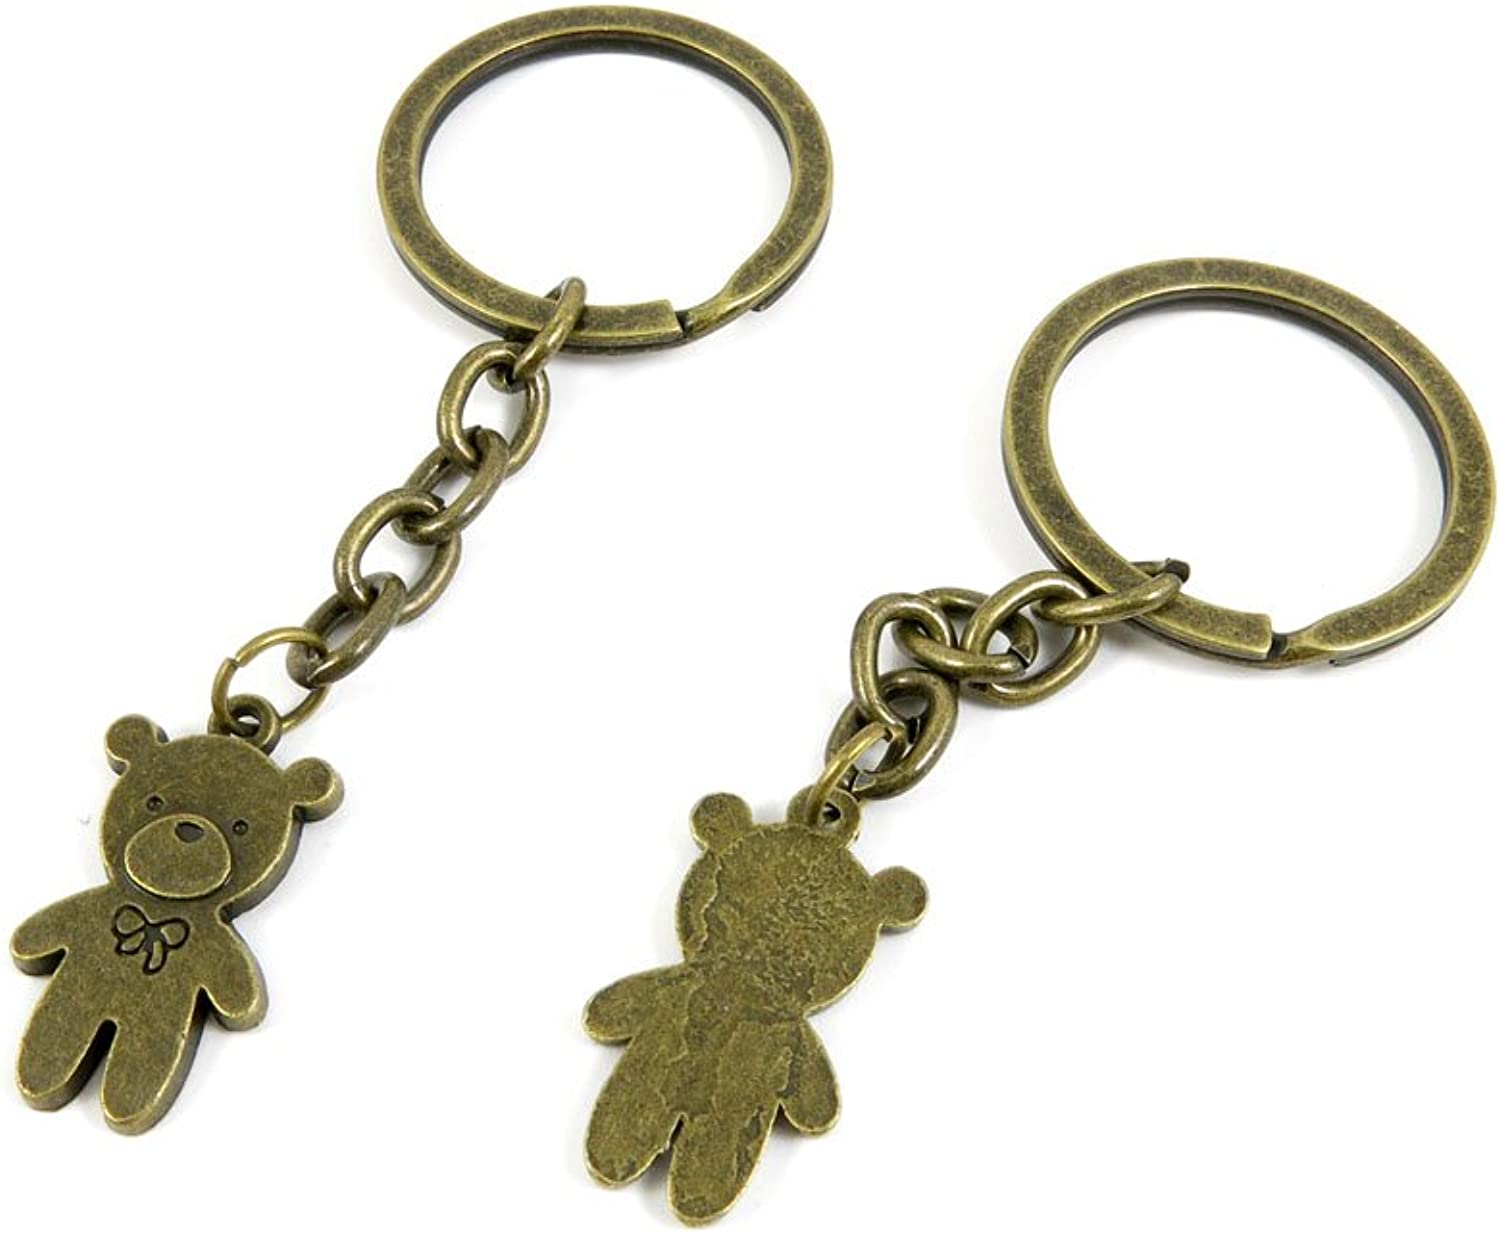 100 PCS Keyrings Keychains Key Ring Chains Tags Jewelry Findings Clasps Buckles Supplies Y7MP0 Teddy Bear